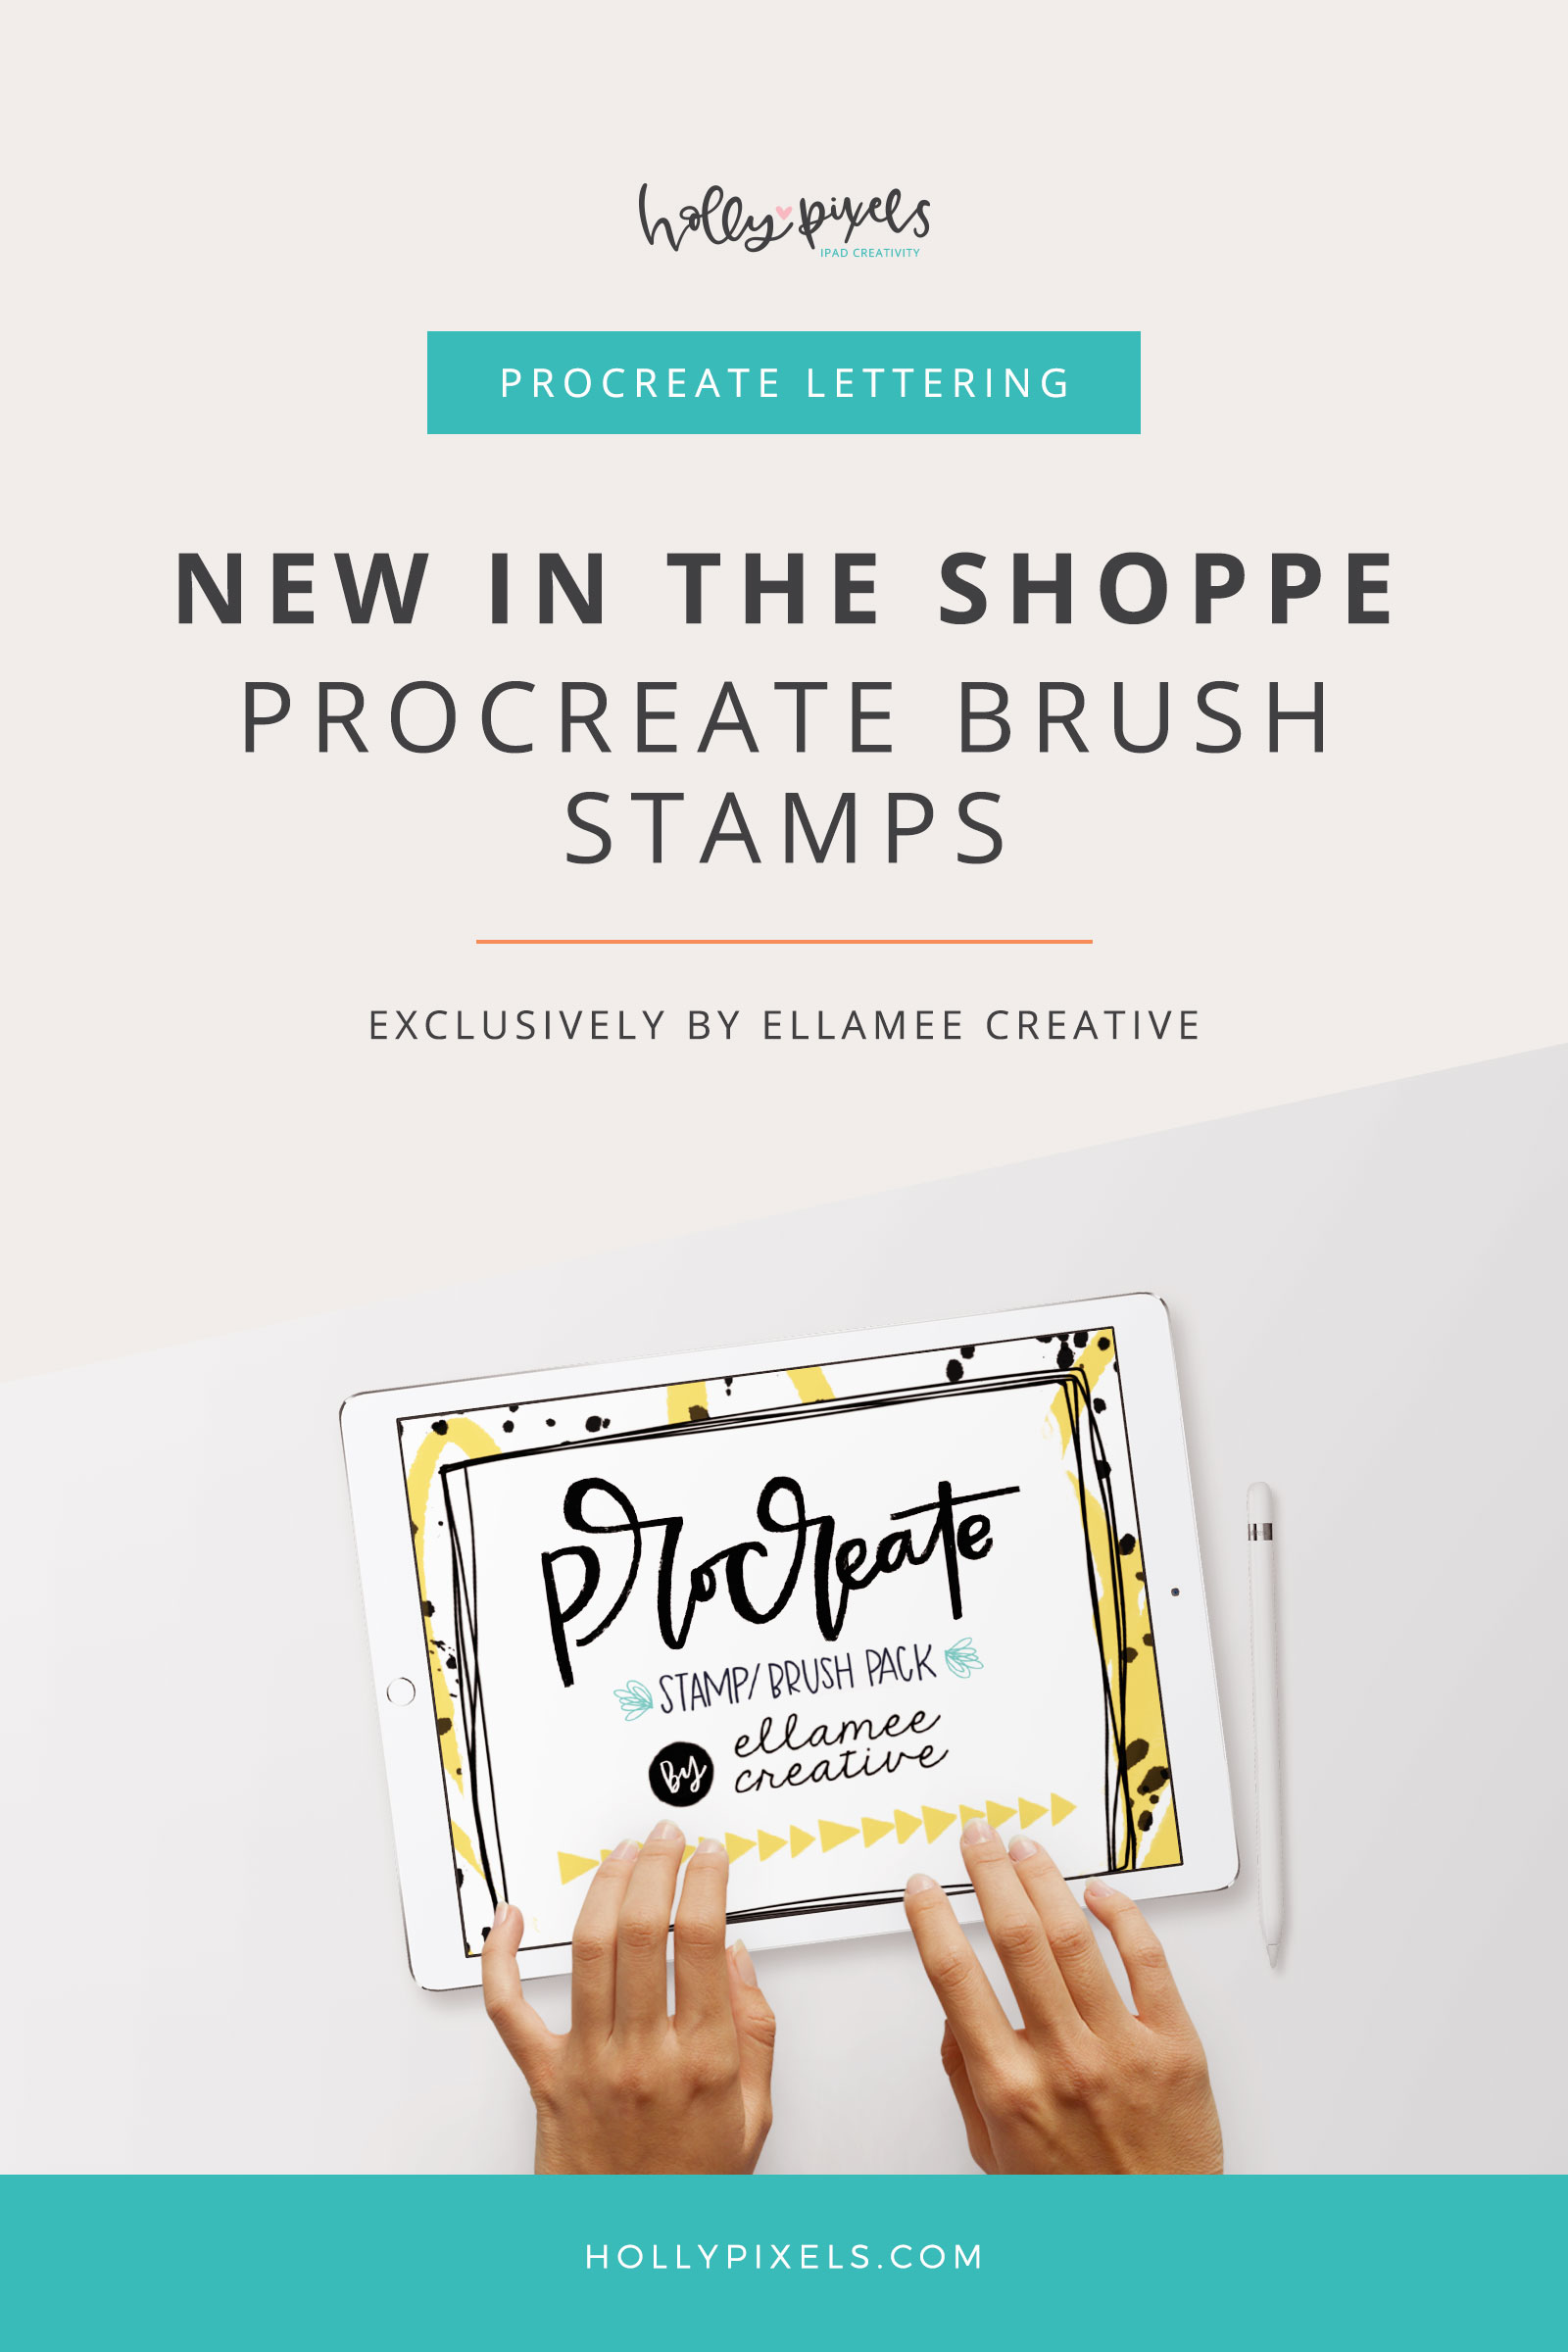 We are so thrilled to have Ellamee Creative making an exclusive set of Procreate Brush stamps for our shoppe! Her Brush Stamps are on my most favorite list of Procreate brushes and I've reviewed some of hers before. Now, she's made fans of Holly Pixels an exclusive set you can use to create super cute and fun Instagram posts.